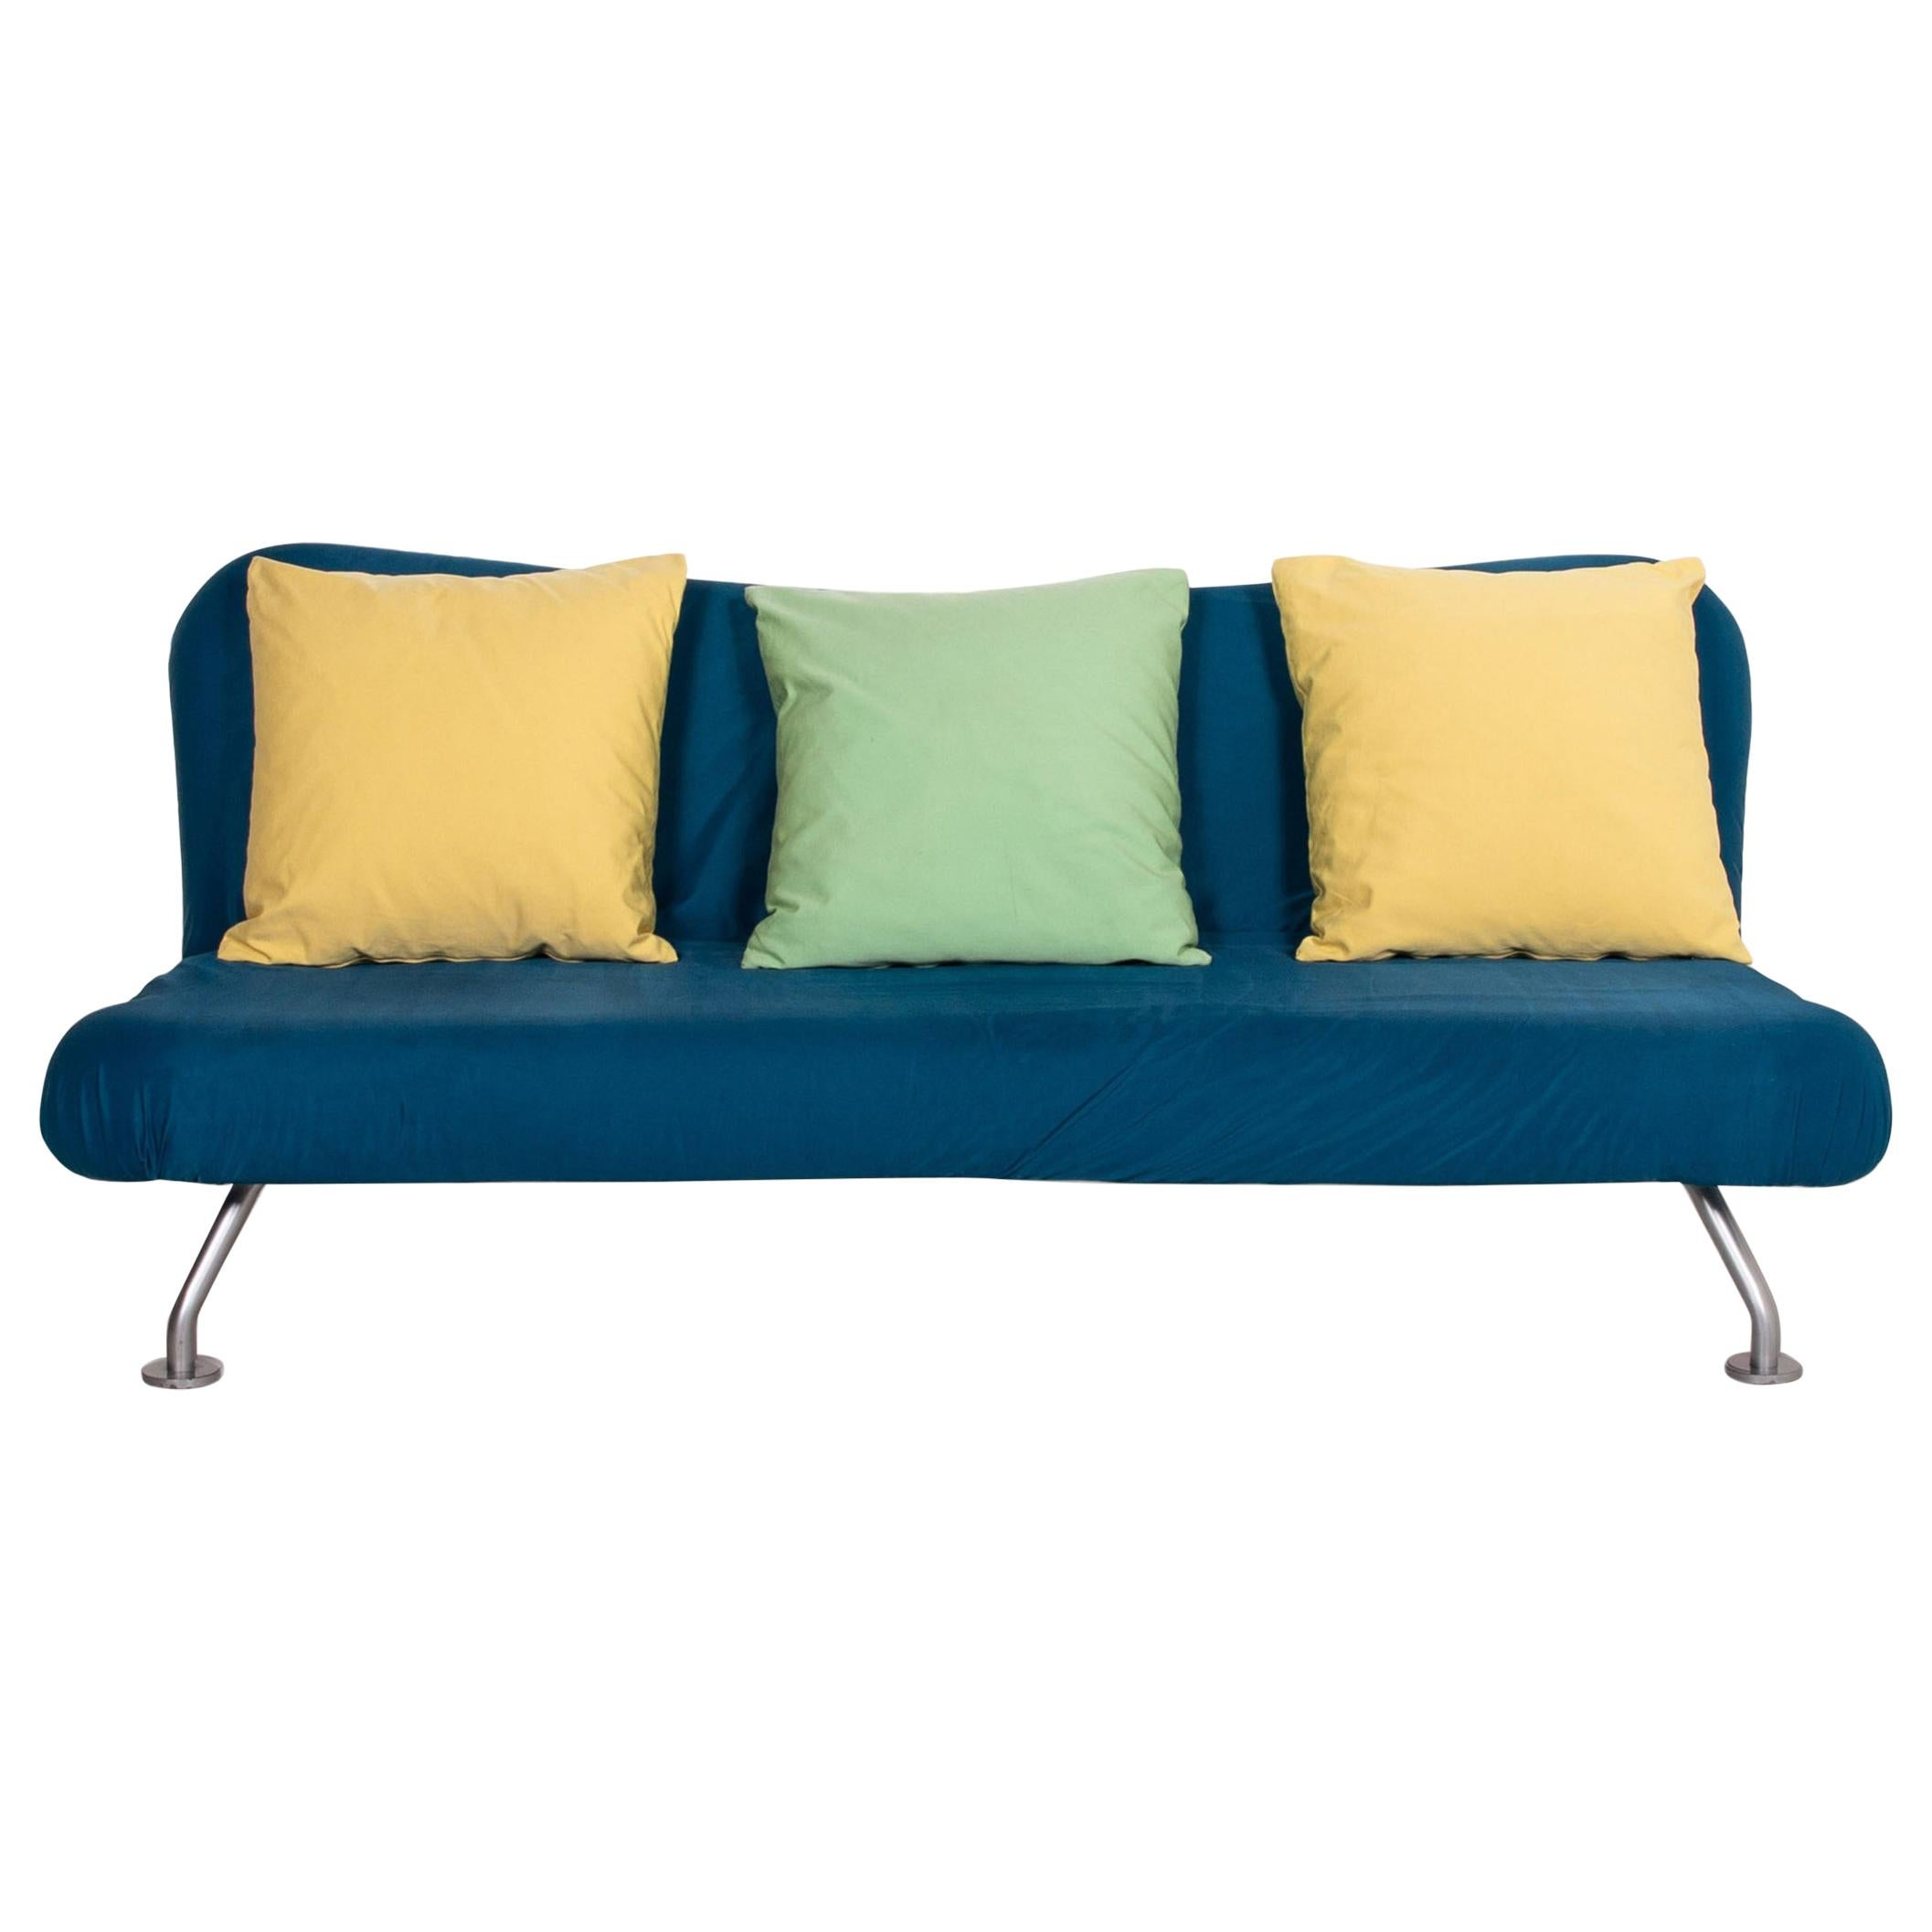 Brühl & Sippold More Sofa Bed Blue Yellow Three-Seat Sofa Function Sleeping